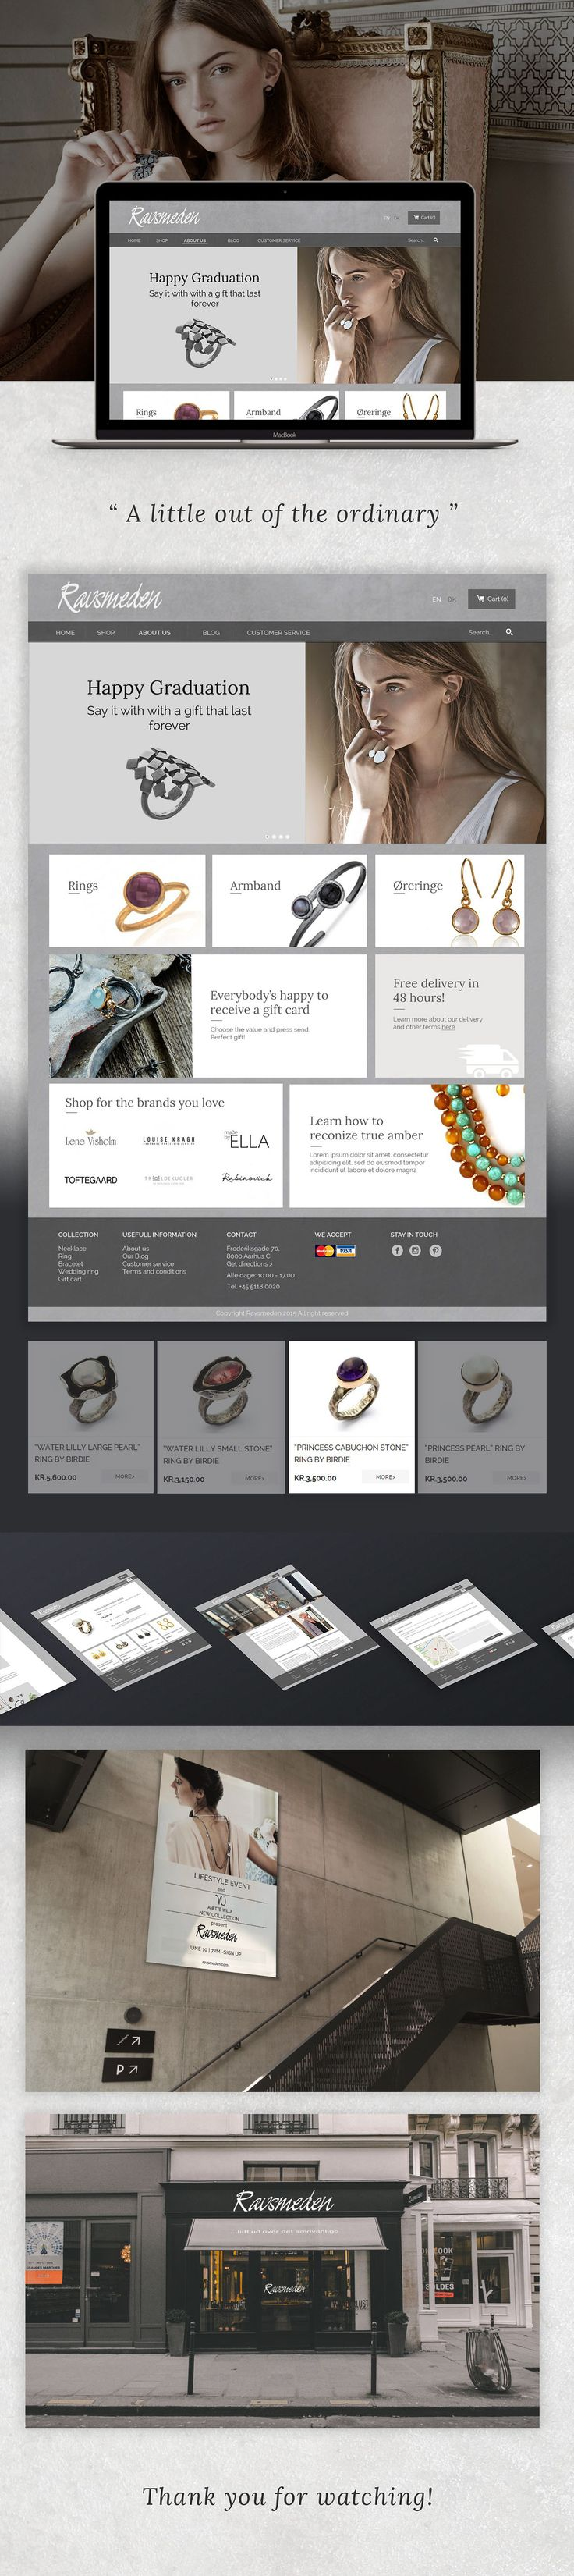 Ravsmeden Jewelry Web Design on Behance